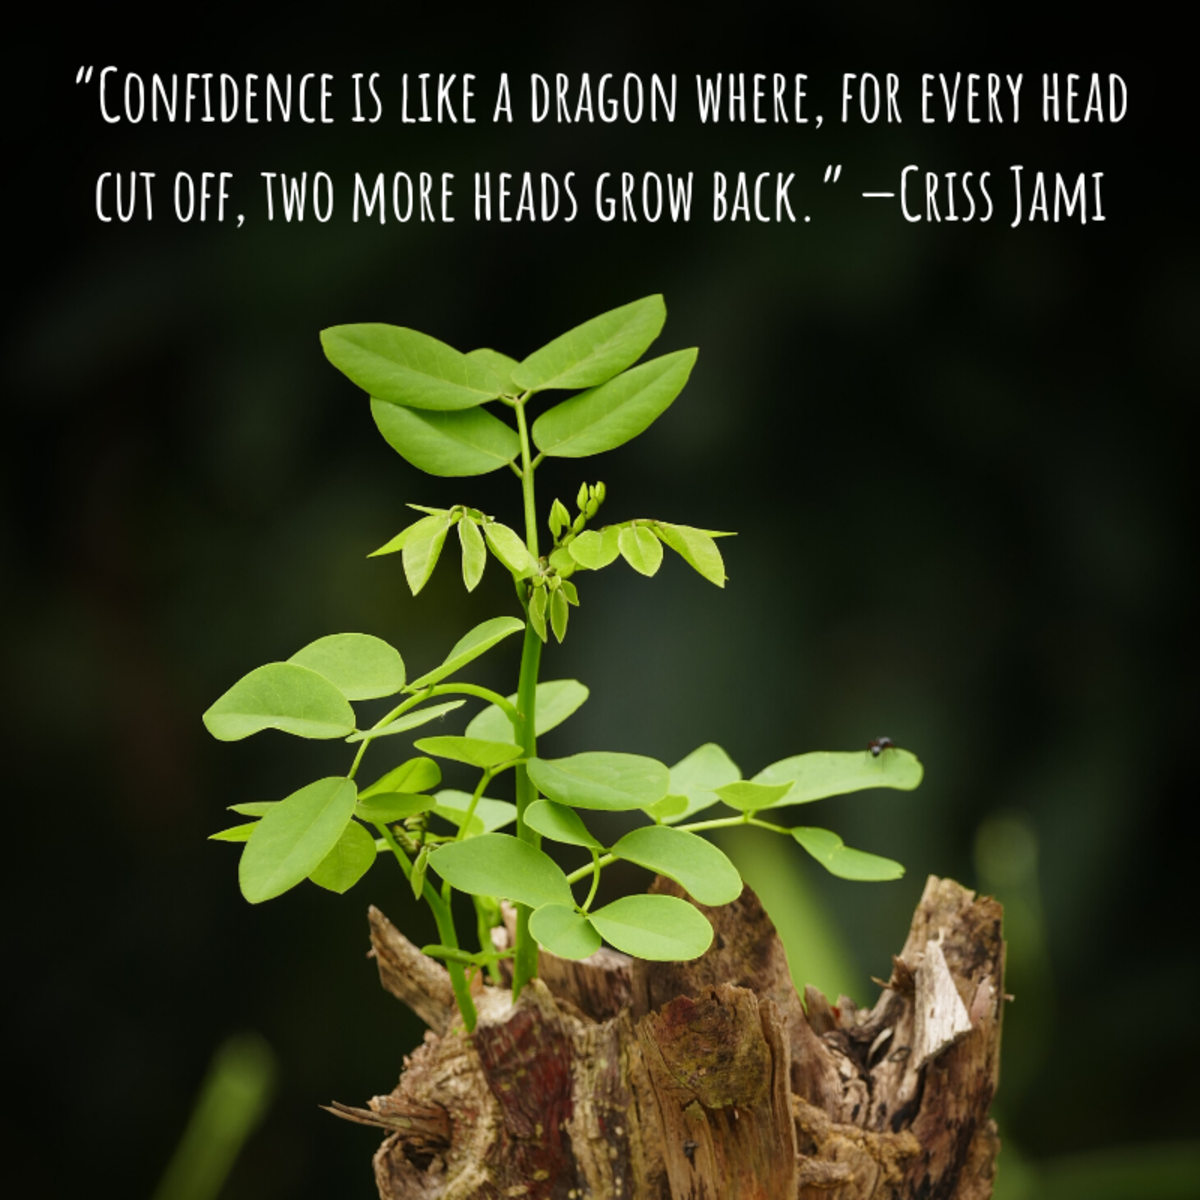 """""""Confidence is like a dragon where, for every head cut off, two more heads grow back."""" —Criss Jami"""